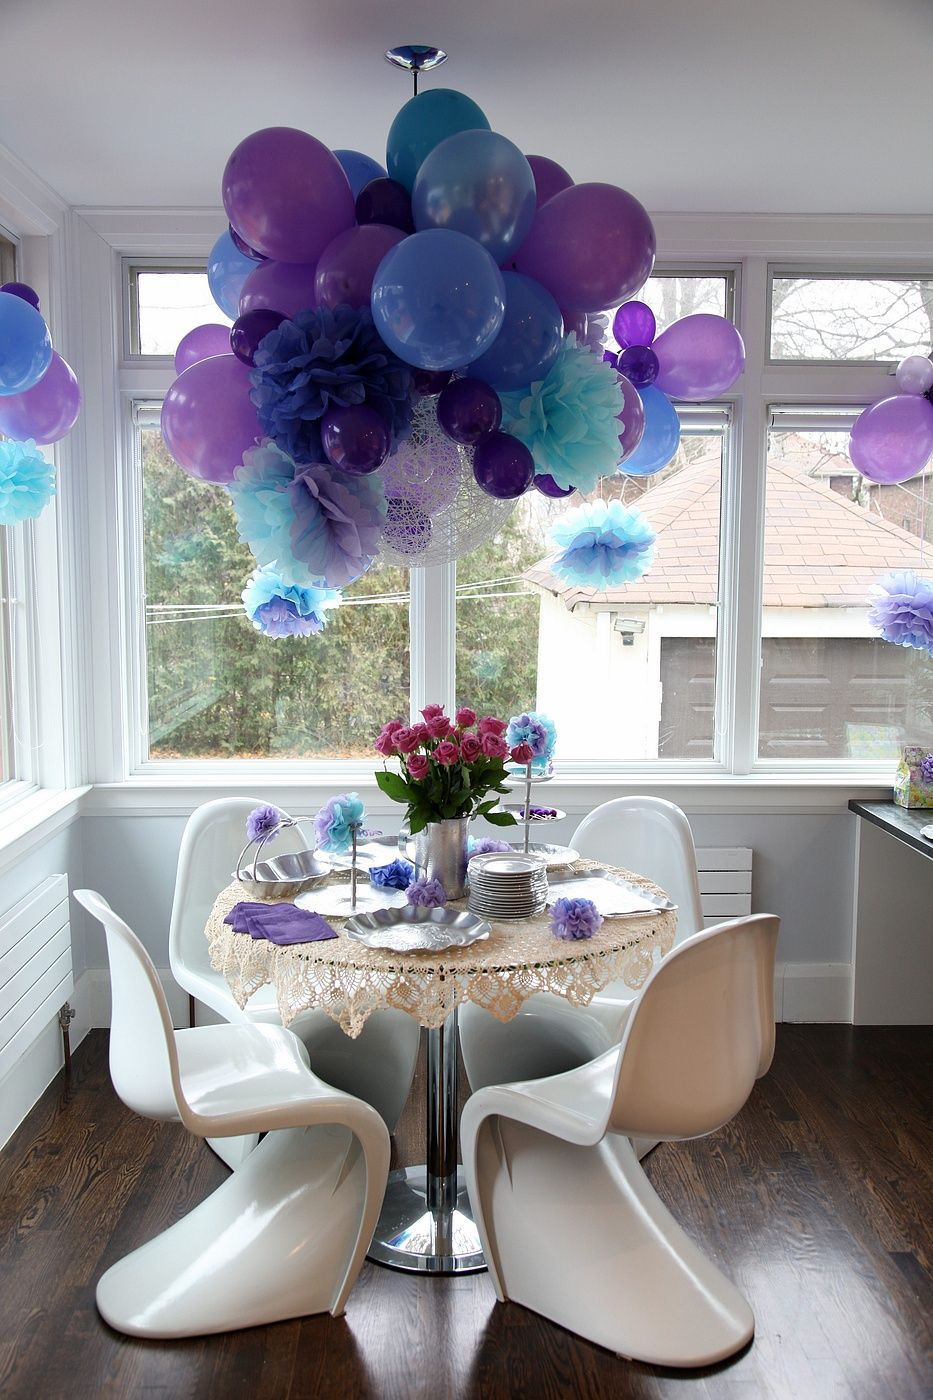 balloons and tissue paper flowers | my dream wedding | pinterest